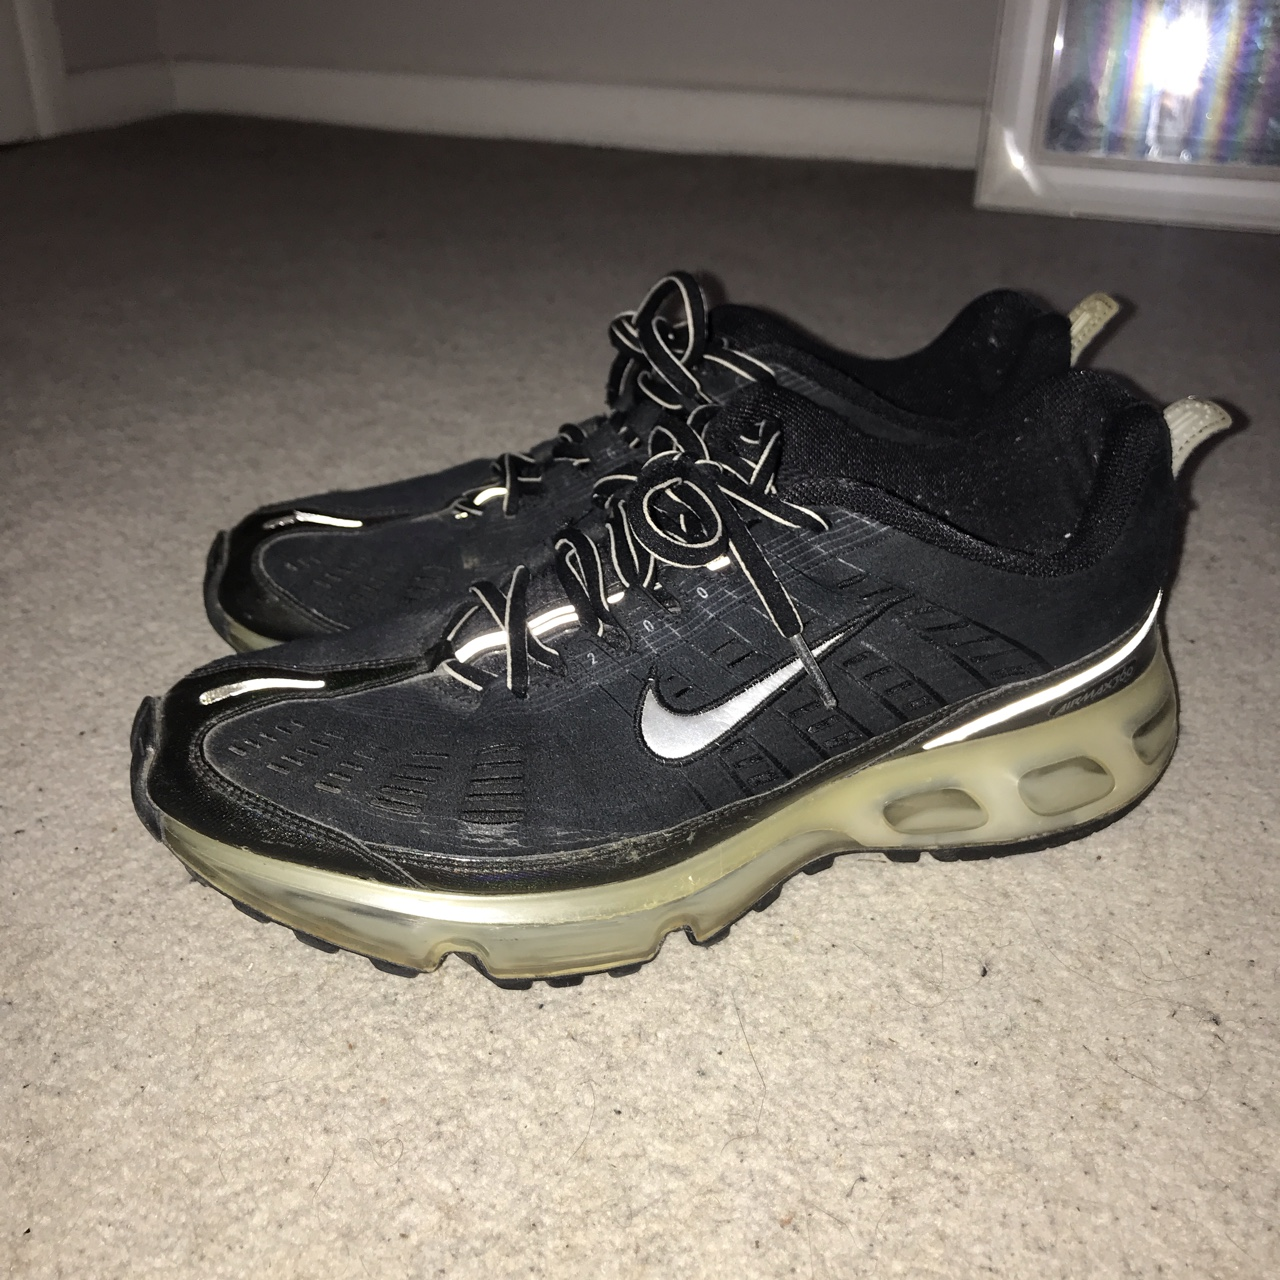 Nike Air Max 360. From 2006 trying to sell as I... - Depop